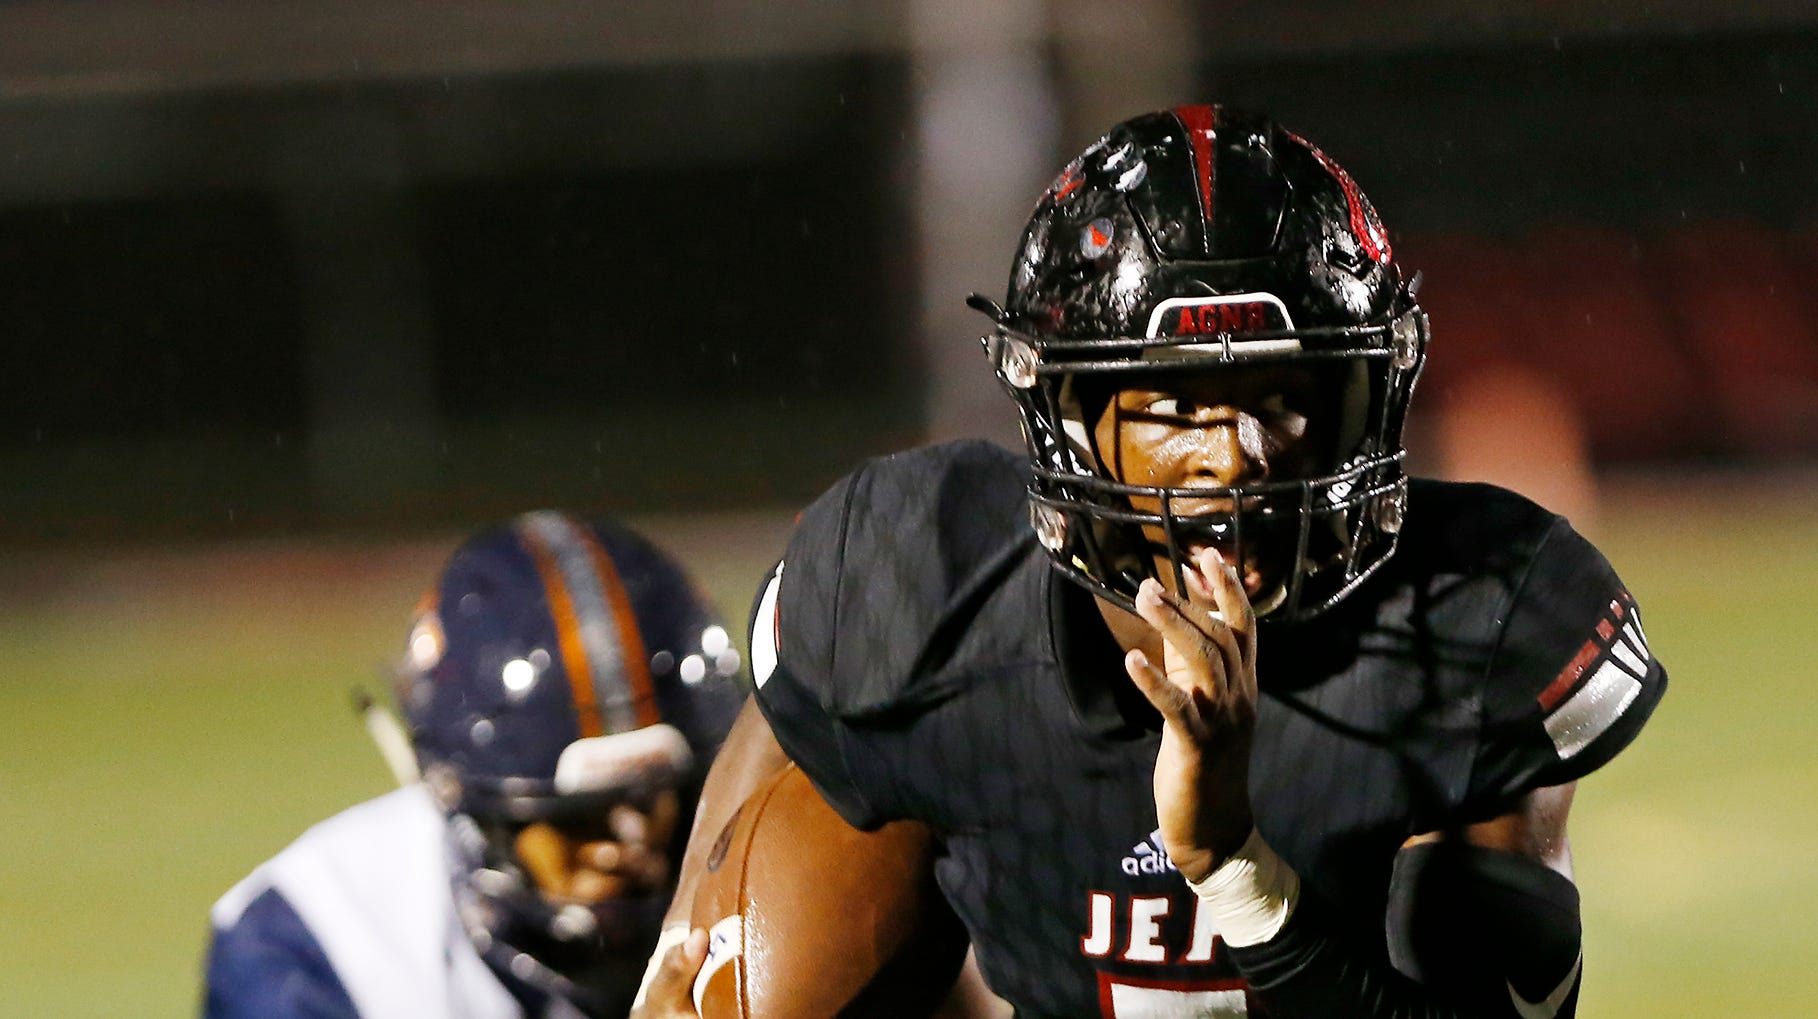 QB turned receiver Brian Jenkins having special season for Lafayette Jeff